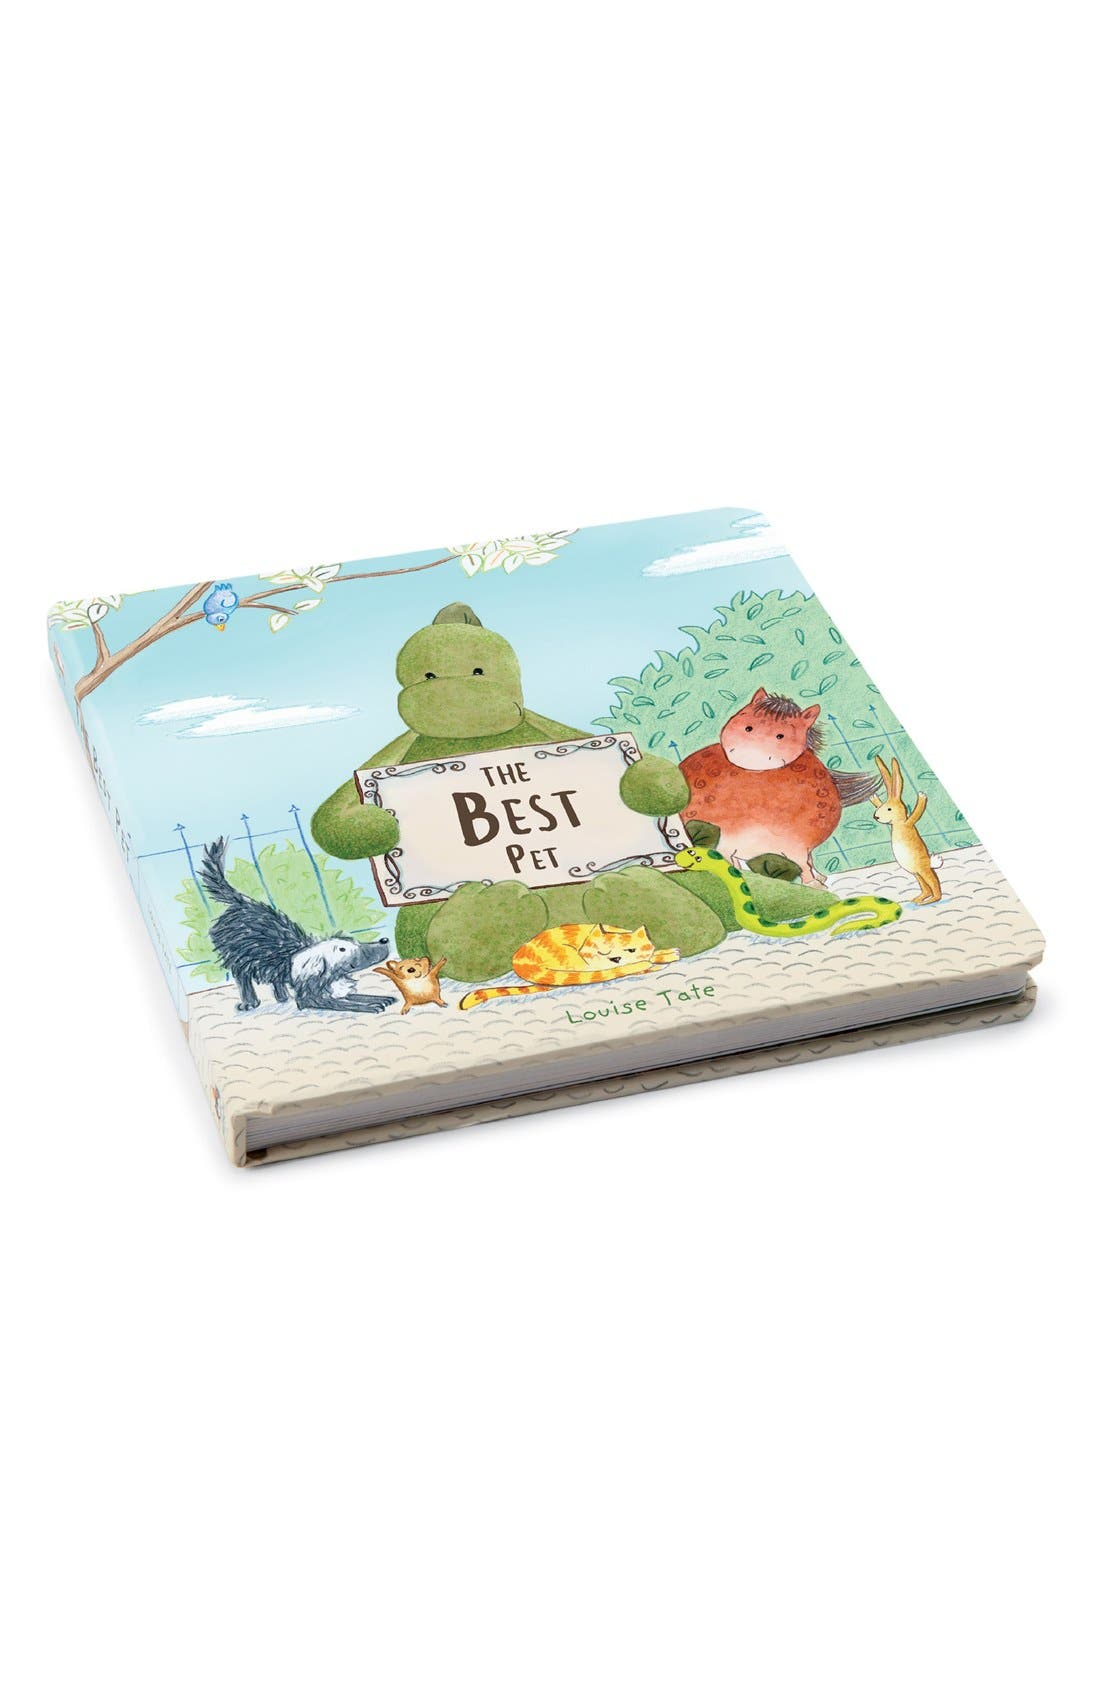 'The Best Pet' Book